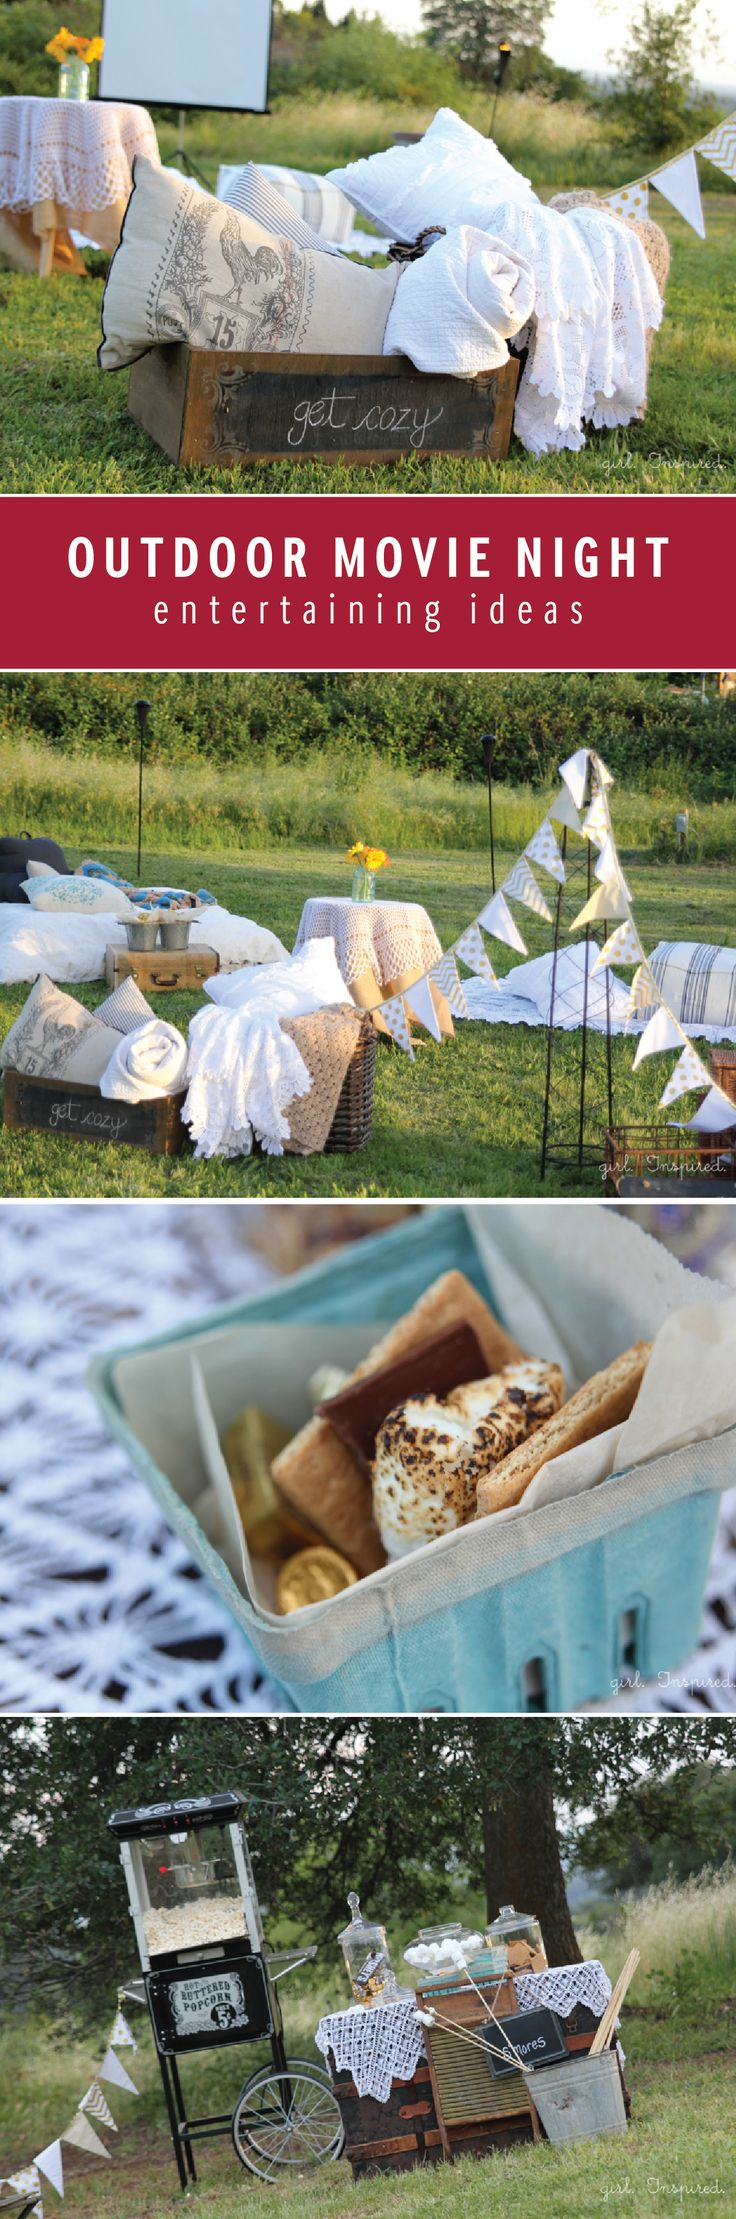 As the temperatures get warmer and you are spending more time outside, host an outdoor movie night! Try hosting this unique grown-up movie night including a s'mores bar, popcorn stand and bar cart filled with the perfect essentials. Be sure to include bottles of Finlandia Vodka so your guests can make their favorite cocktails.